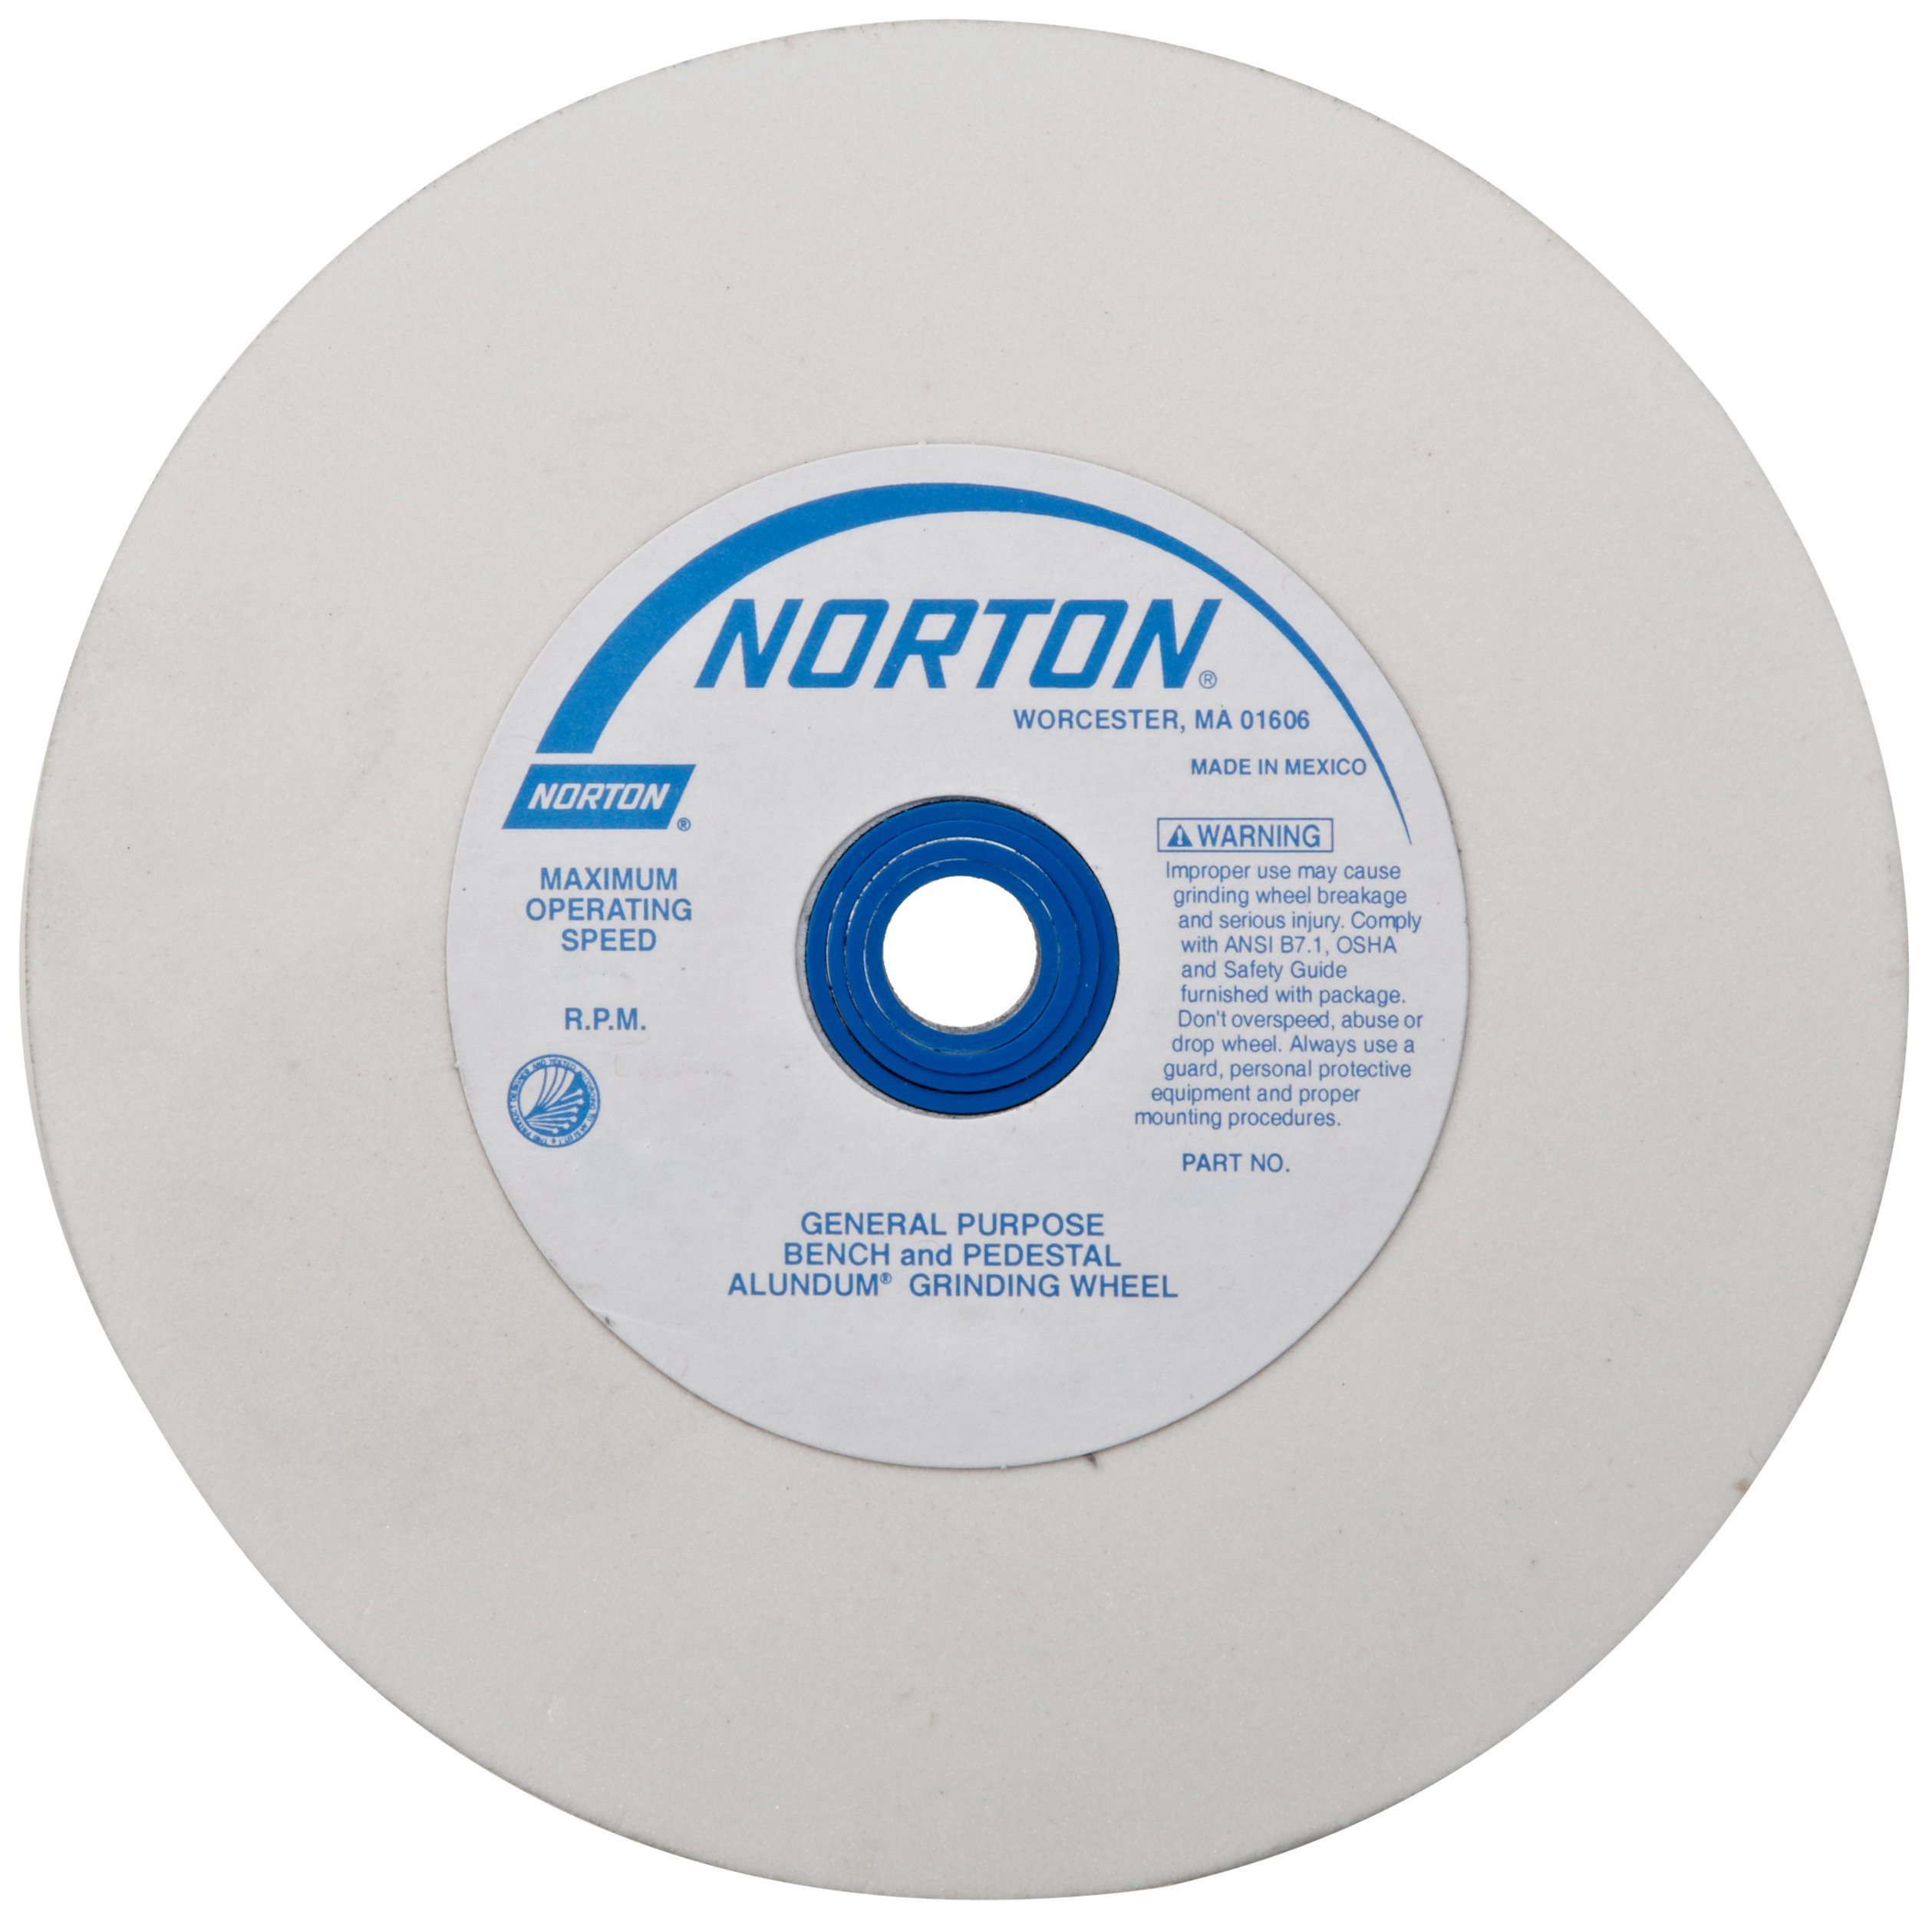 Norton 07660788263 (38A) Premium Alundum Type 01 Bench and Pedestal Grinding Wheel, Very Fine Grit, White Aluminum Oxide Abrasive, 1'' Arbor Hole, 6'' Diameter x 1'' Thick by Norton Abrasives - St. Gobain